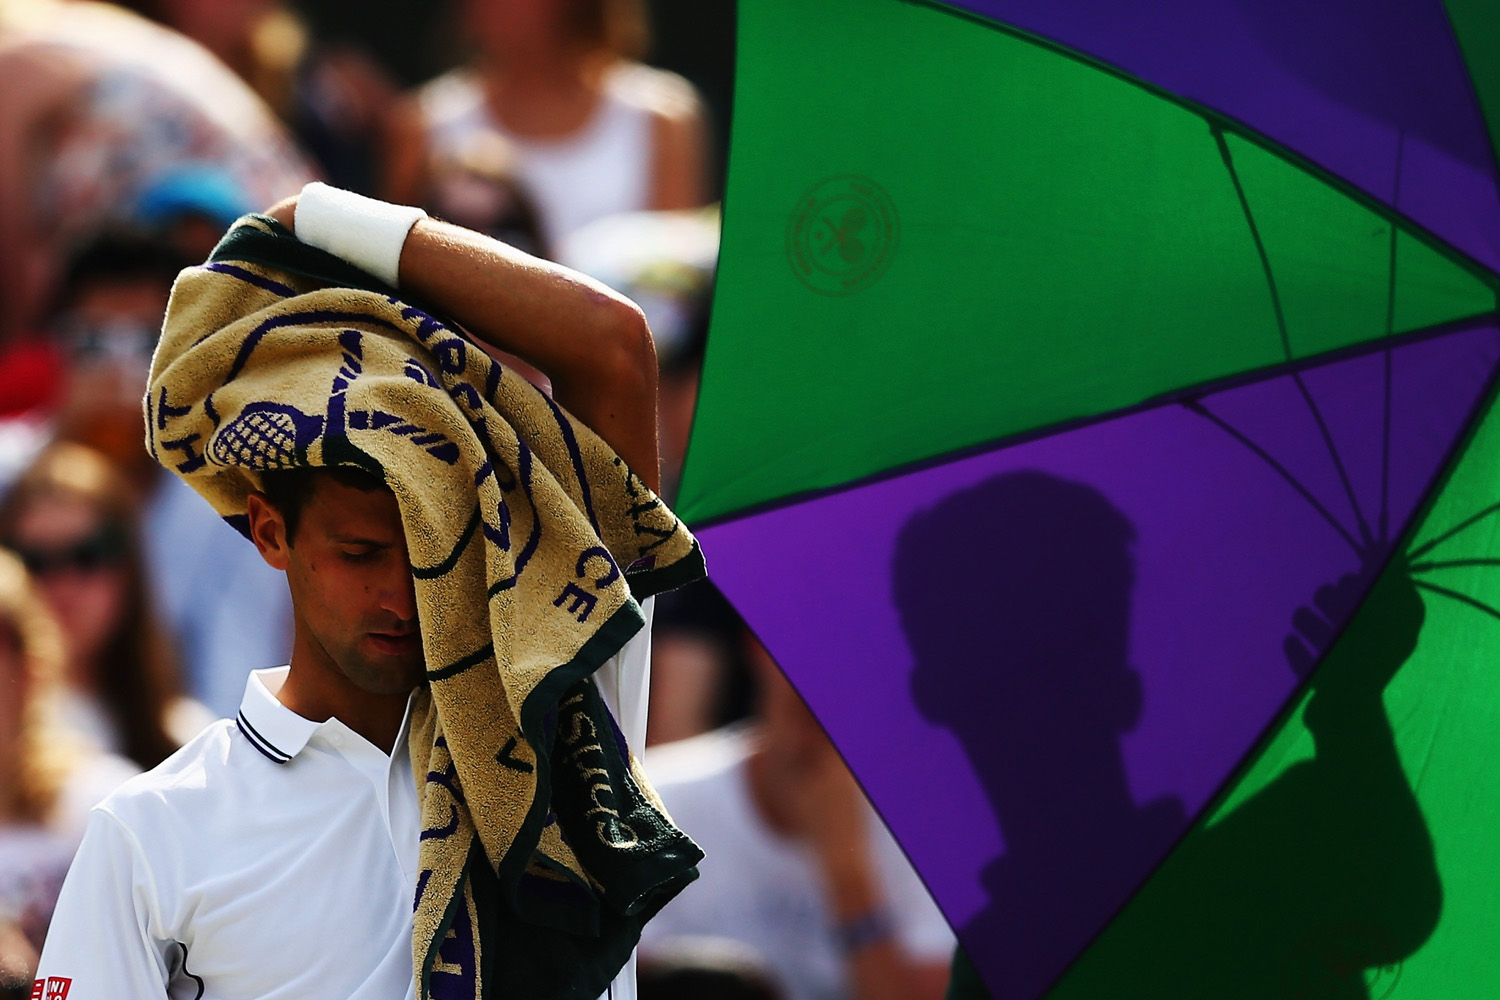 Jul. 2, 2014. Novak Djokovic of Serbia hides his face as he sits down during a change of end during his Gentlemen's Singles quarter-final match against Marin Cilic of Croatia on day nine of the Wimbledon Lawn Tennis Championships at the All England Lawn Tennis and Croquet Club  at Wimbledon in London, England.